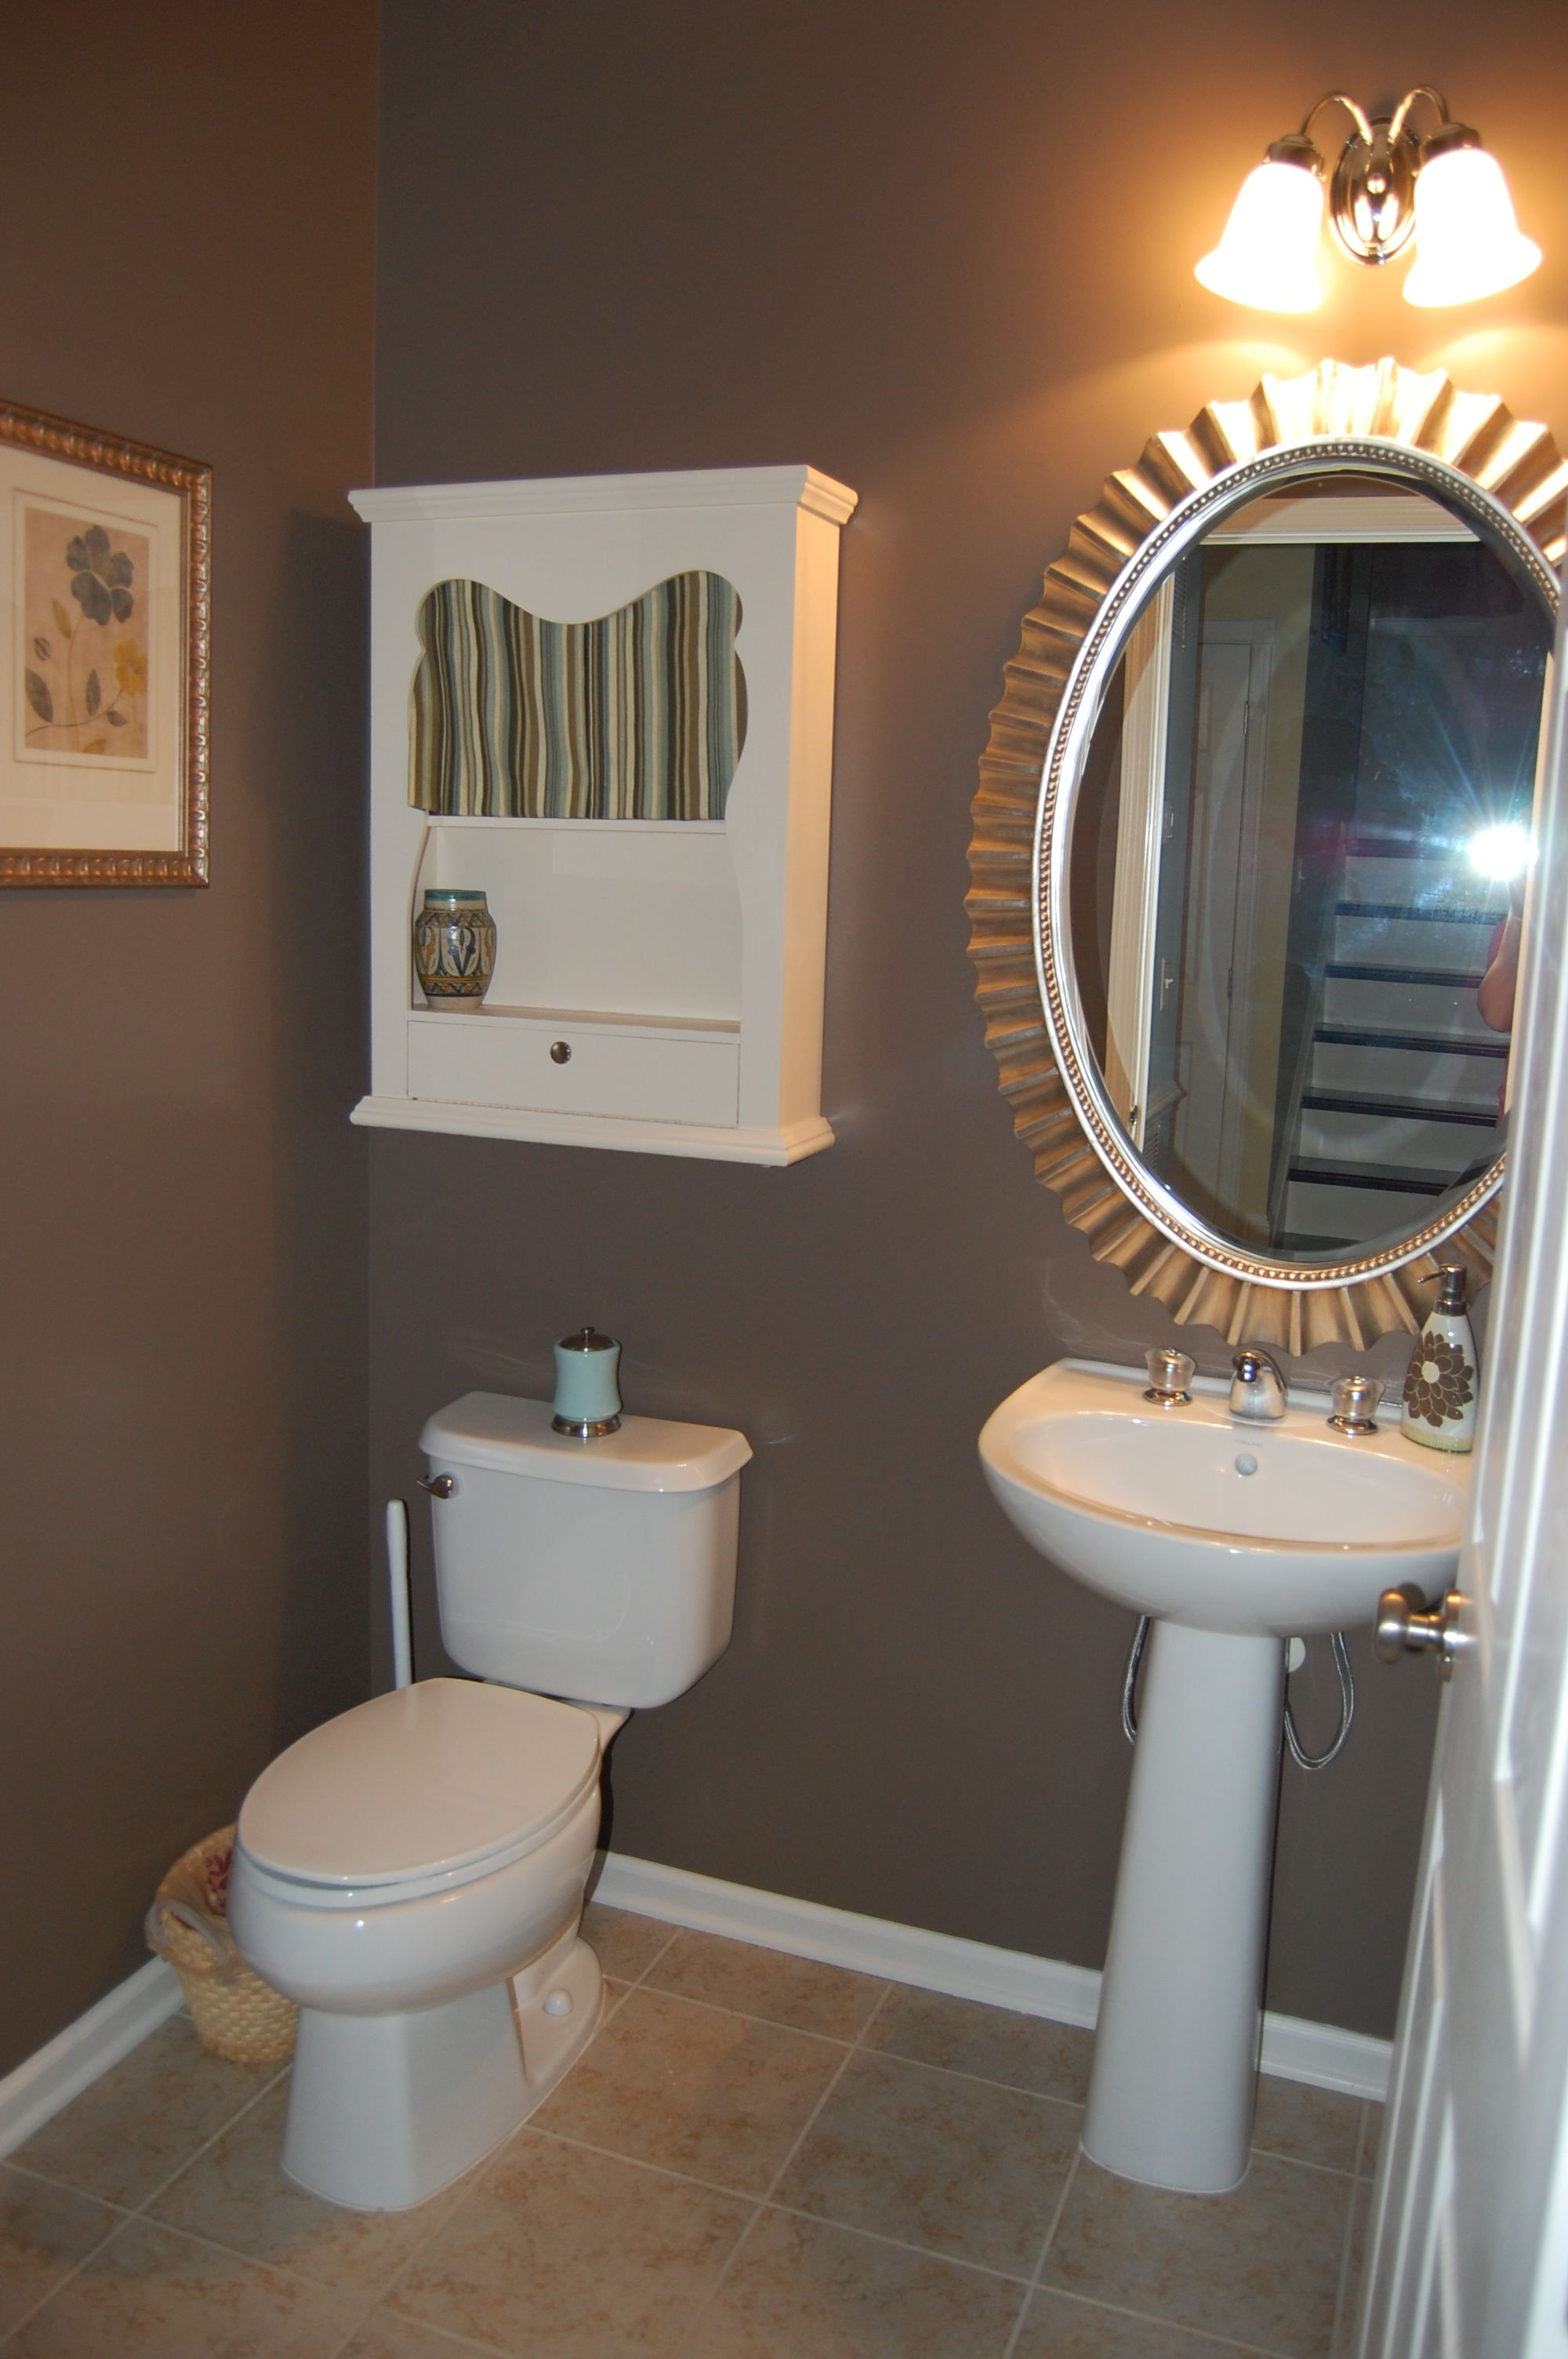 Powder Room Bathroom Color Projects Pinterest Like A Pro Interior Design Tips And Decorating